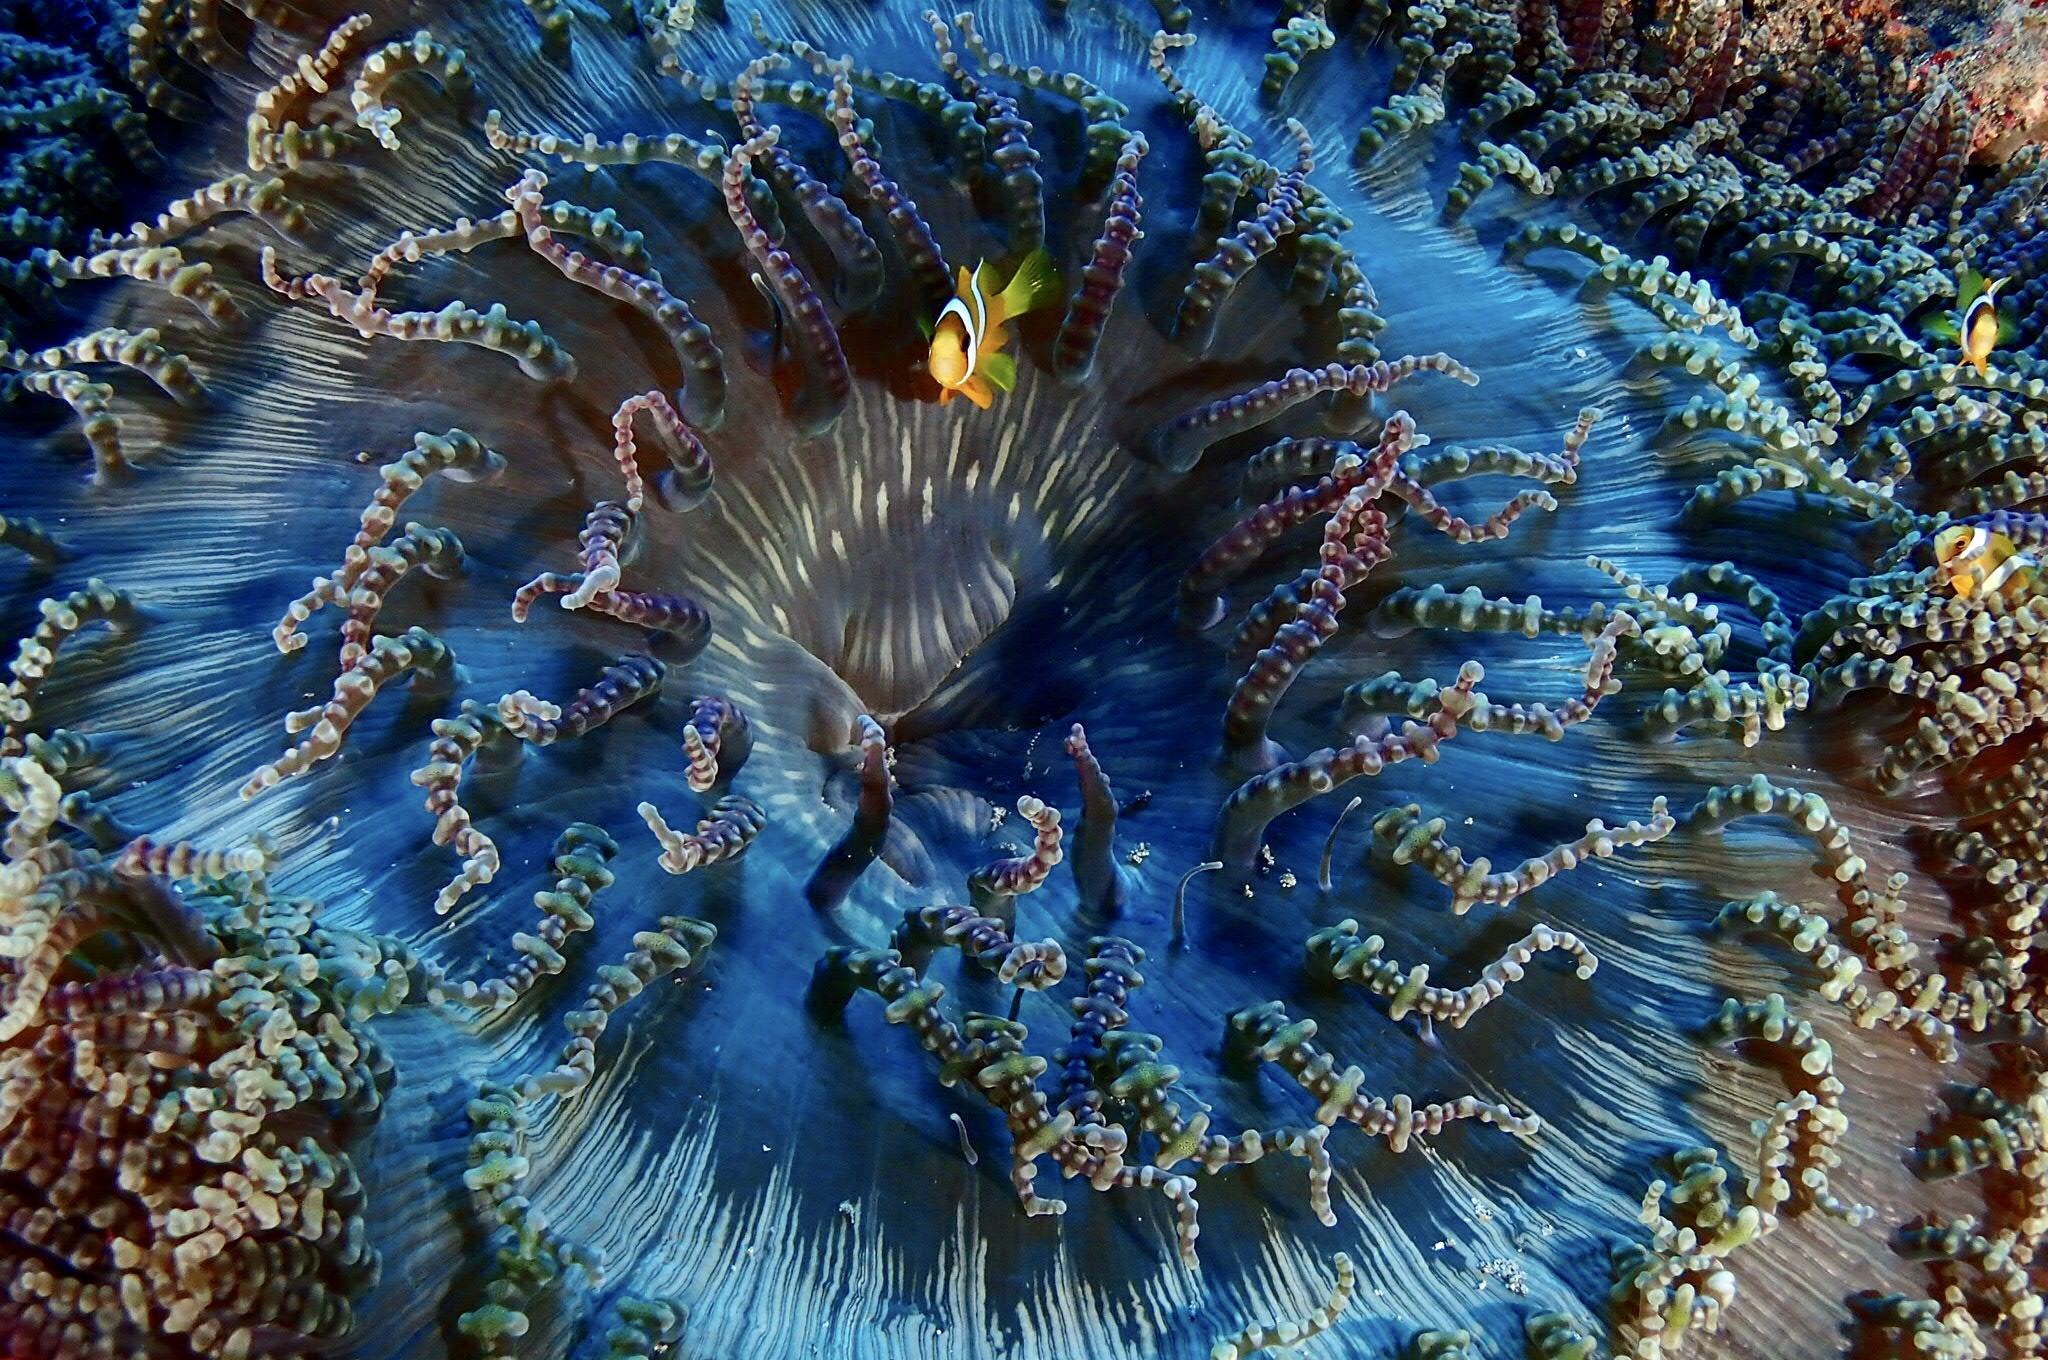 blue beaded anemonie and clown fish